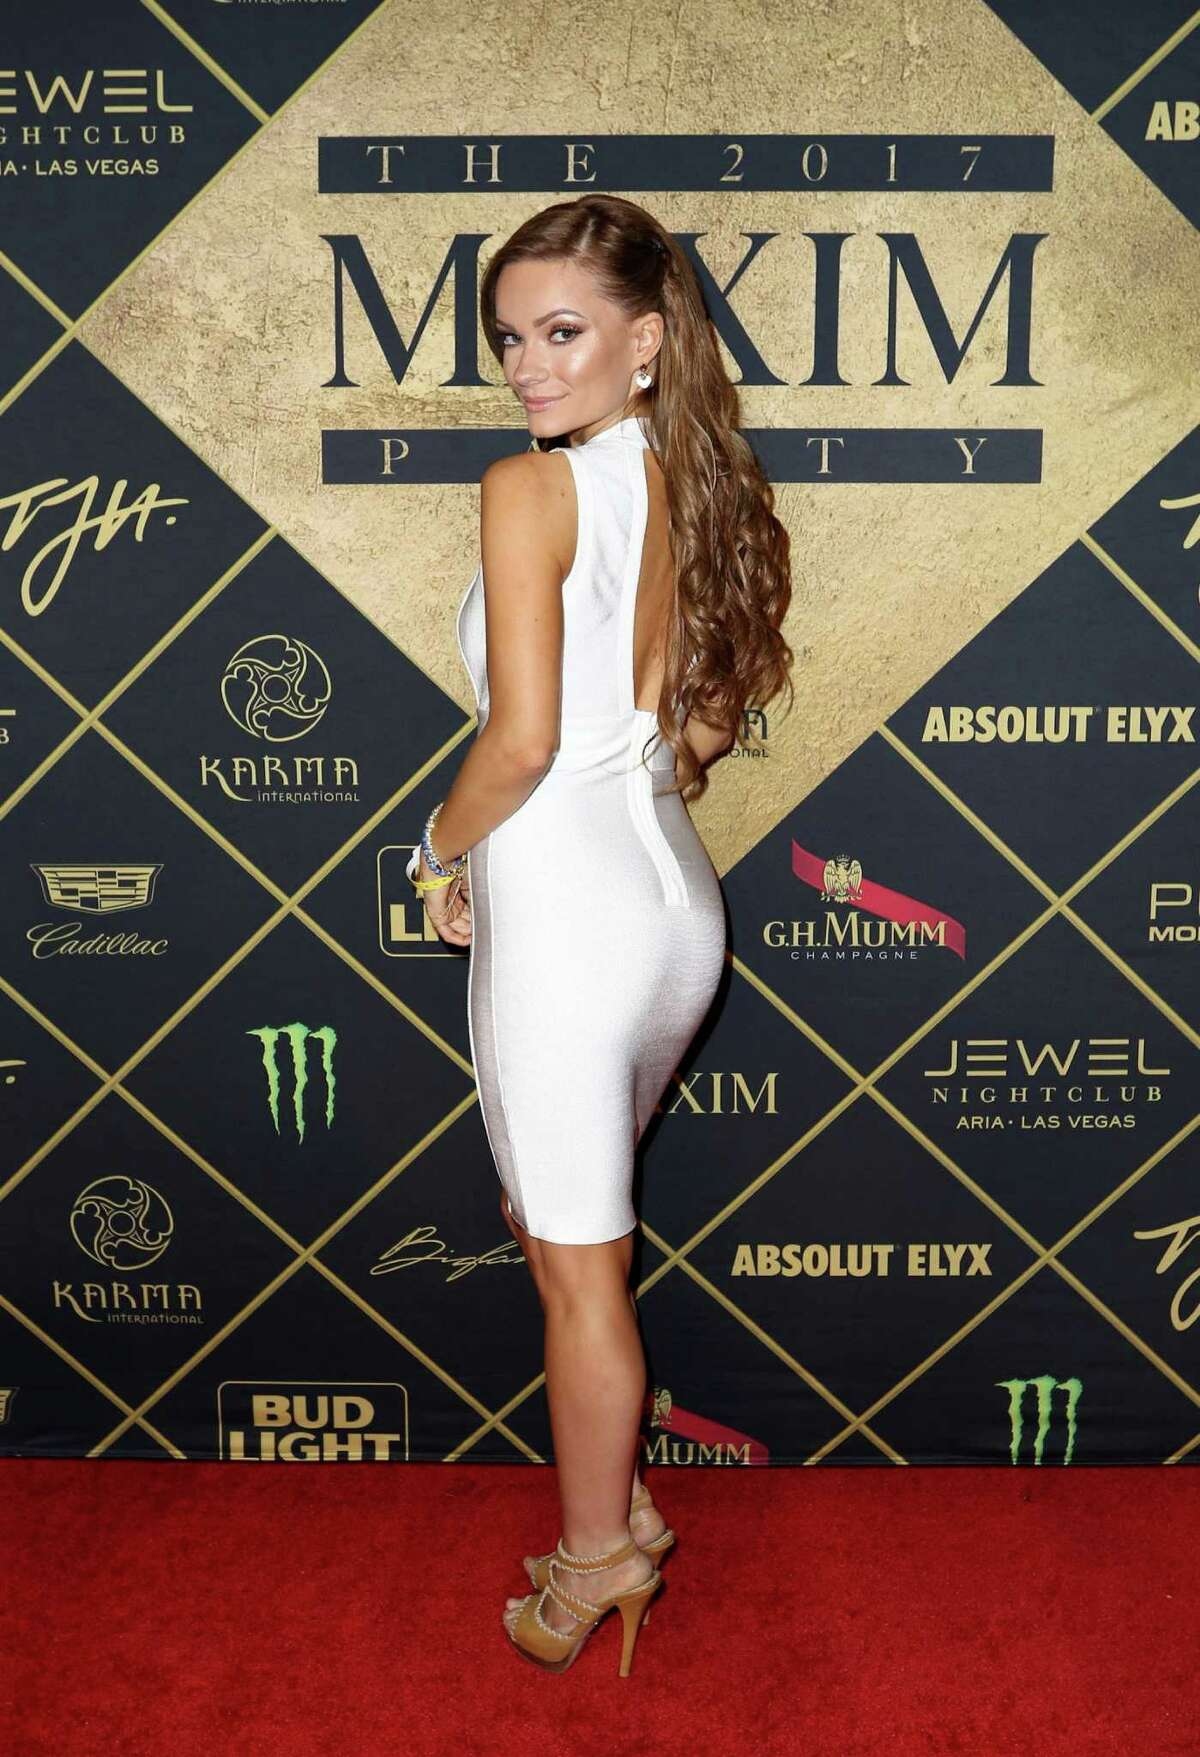 HOUSTON, TX - FEBRUARY 04: Model Caitlin O'Connor arrives at the Maxim Super Bowl Party on February 4, 2017 in Houston, Texas.